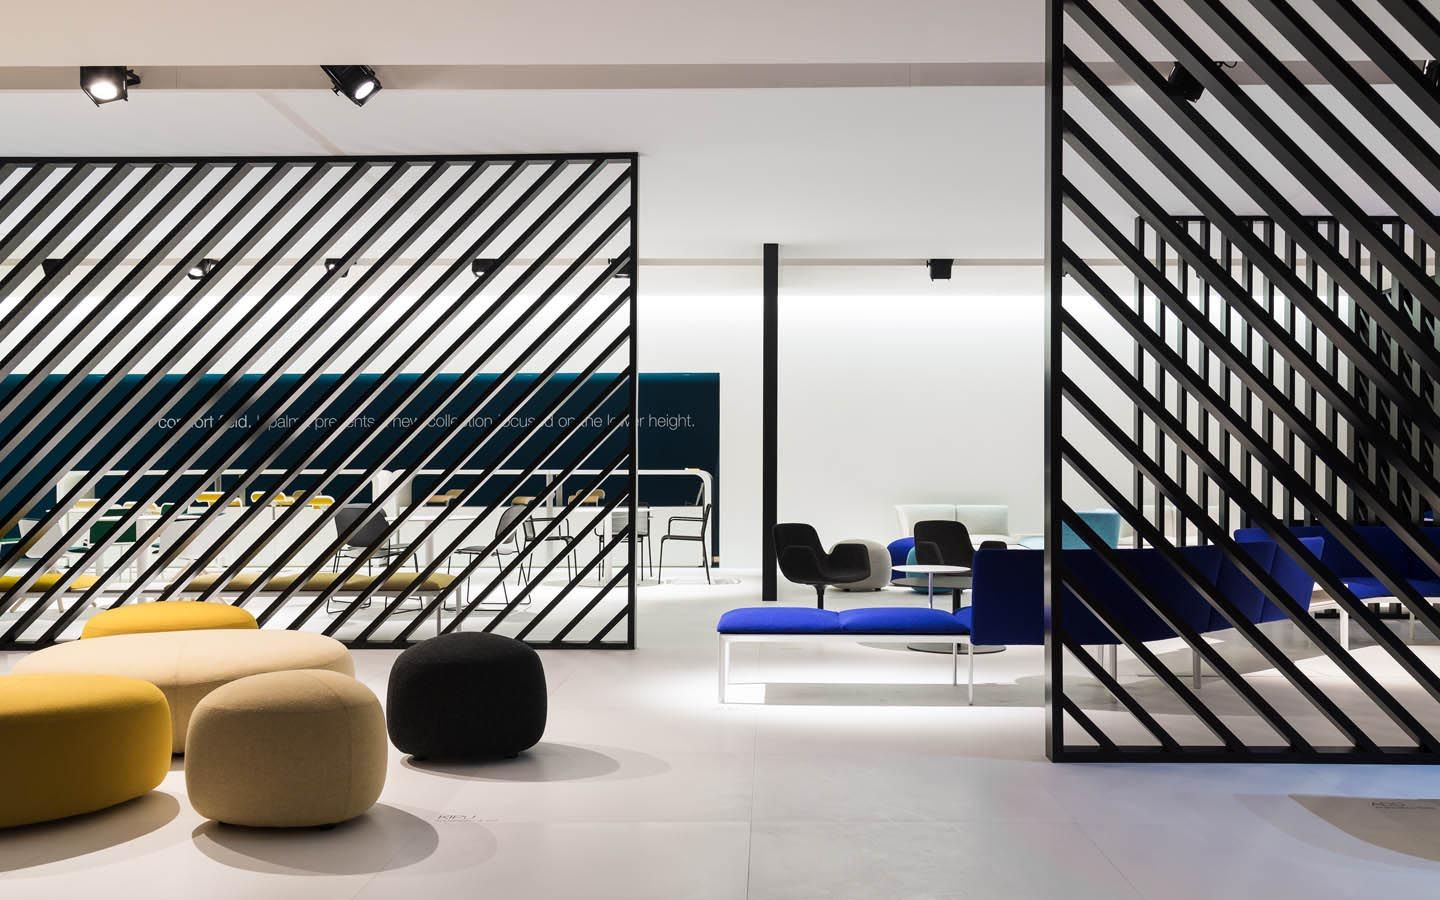 Holz Trennwand Innen Graphic Black Office Screens At La Palma Fti Consulting